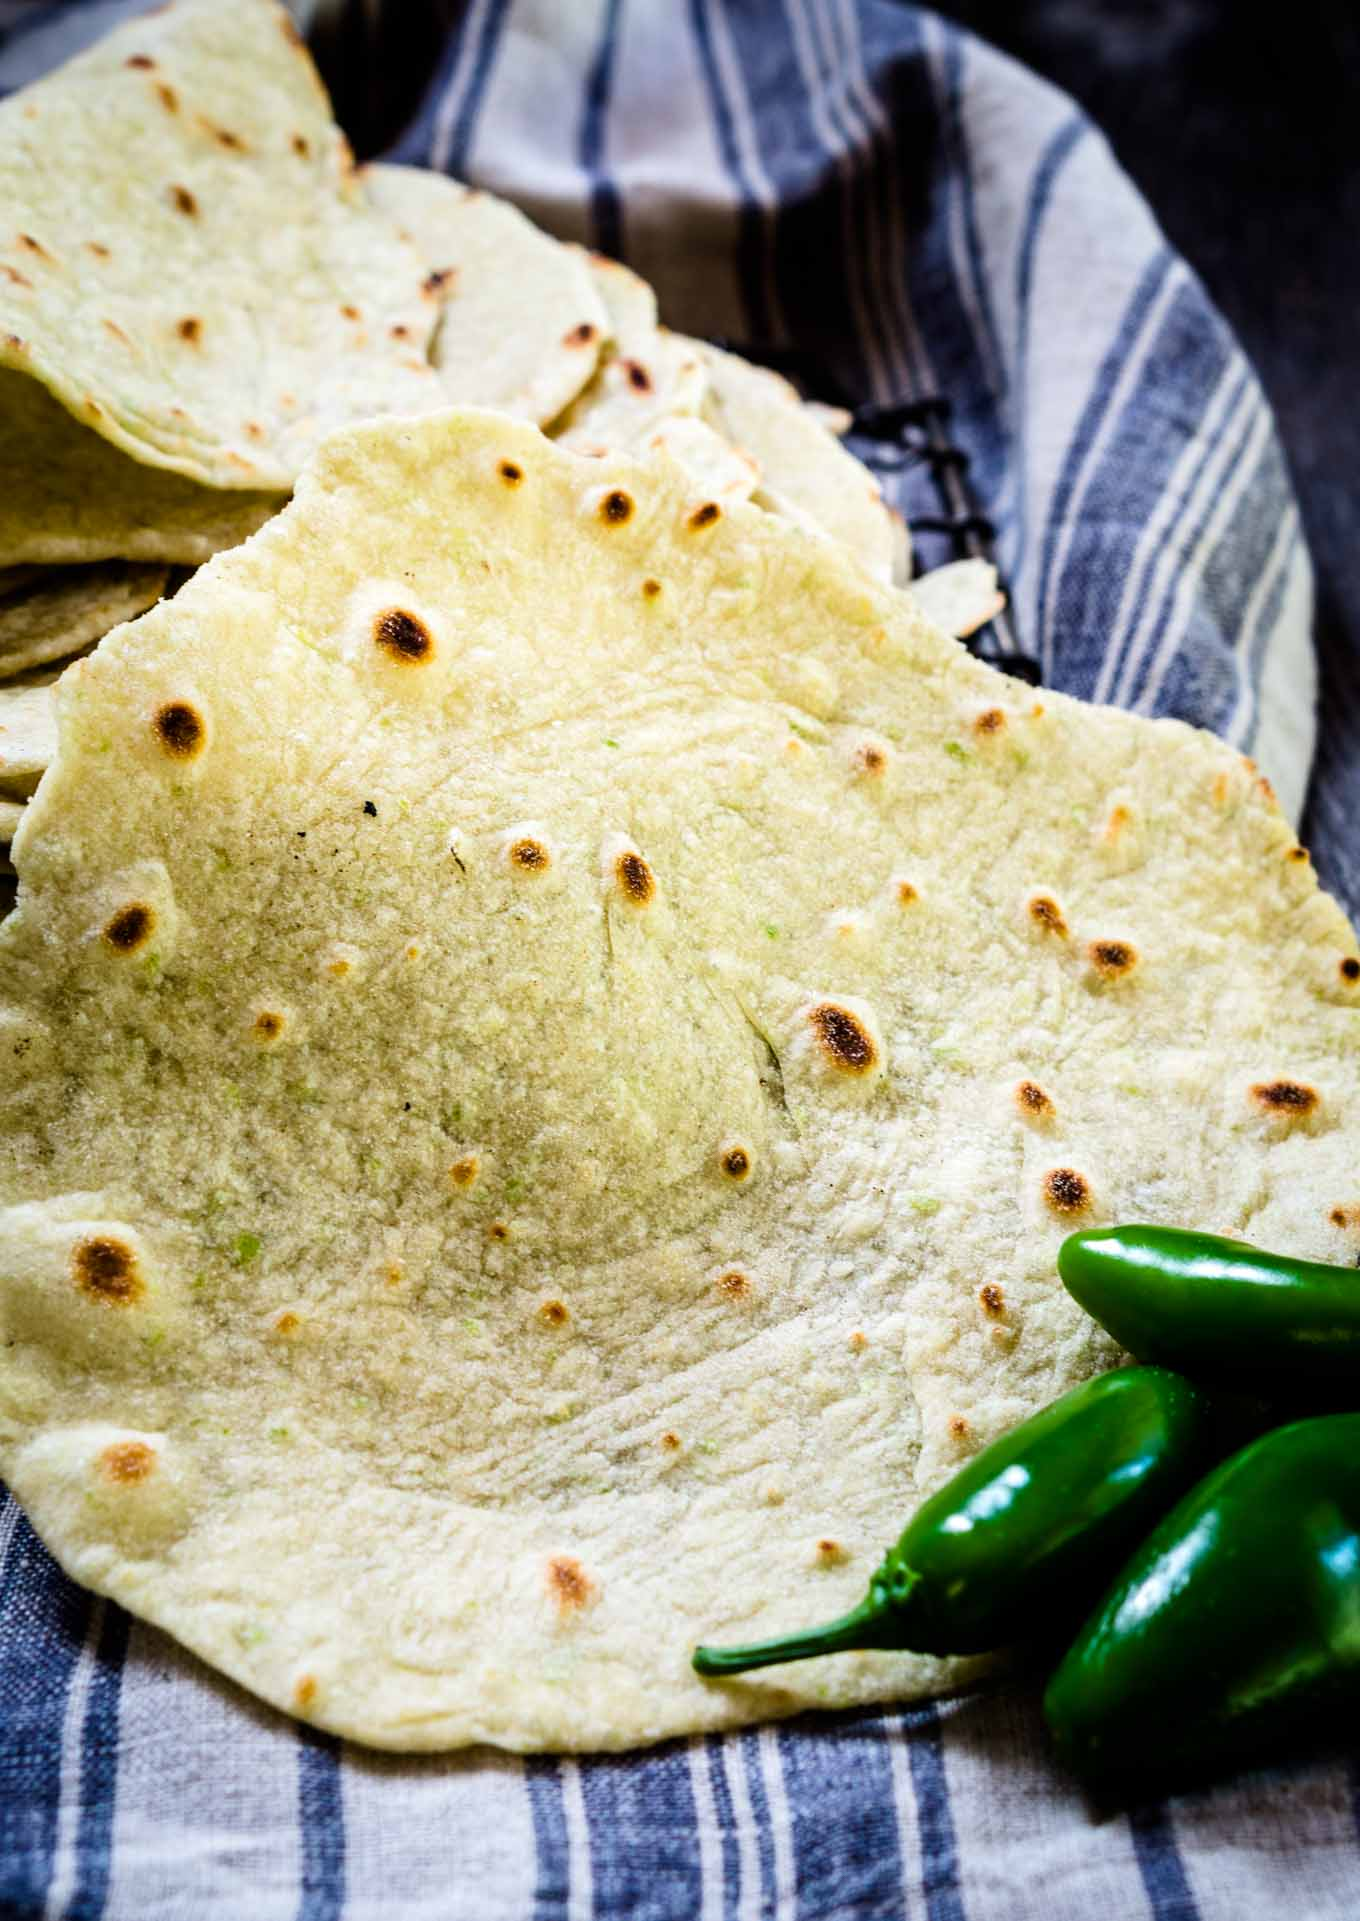 A close up of a fresh tortilla with fresh jalapenos sitting in the foreground.